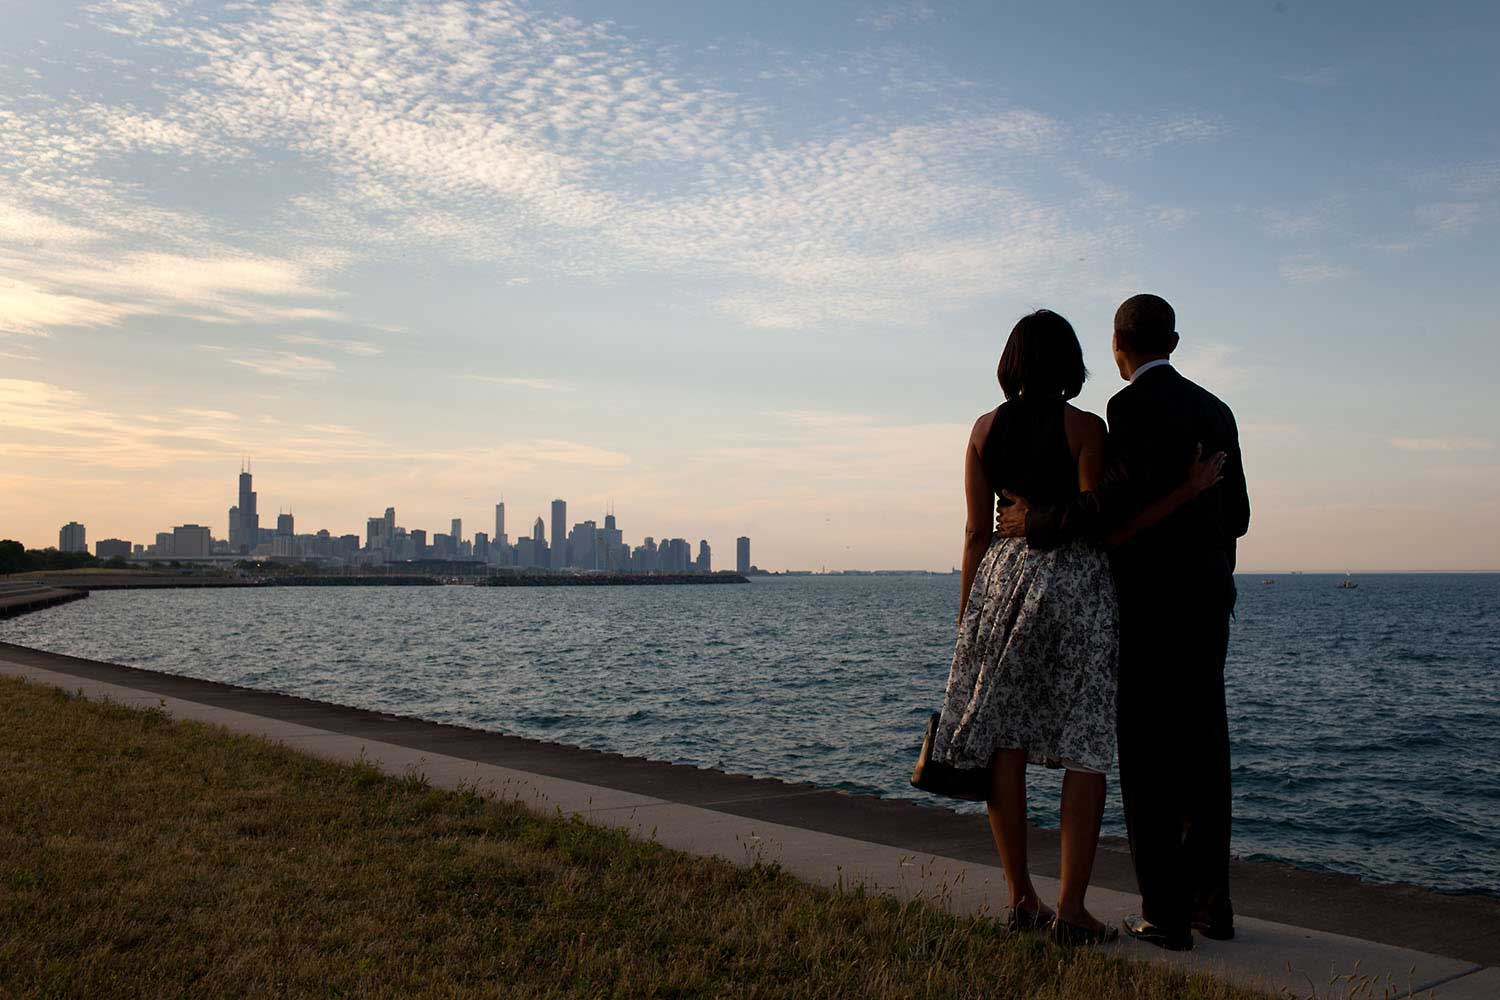 The President and First Lady look out at the city skyline and Lake Michigan after arriving at the Burnham Park landing zone in Chicago, Ill., June 15, 2012.